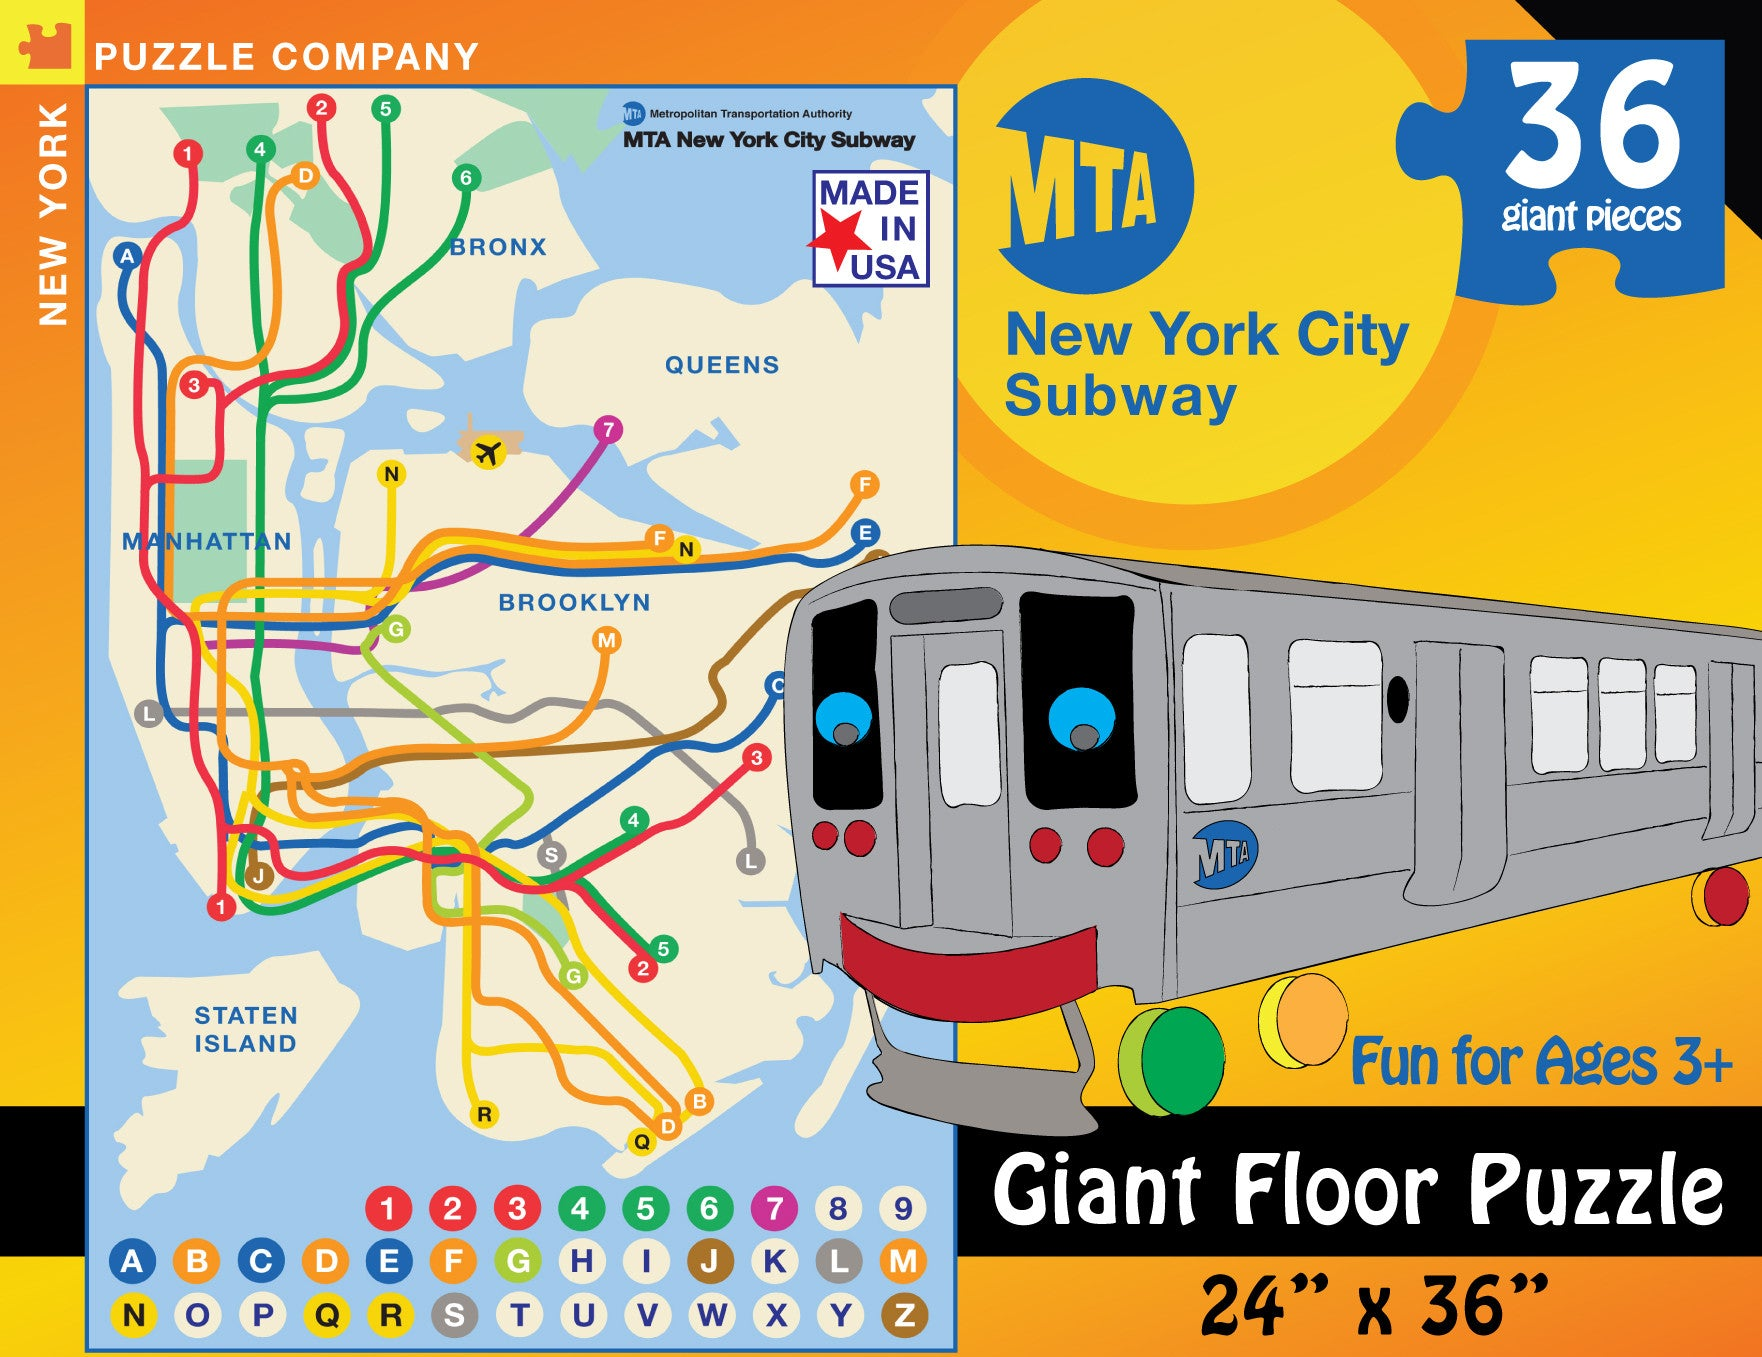 Nyc Subway Map 2000.New York Subway Map Kids New York Puzzle Company